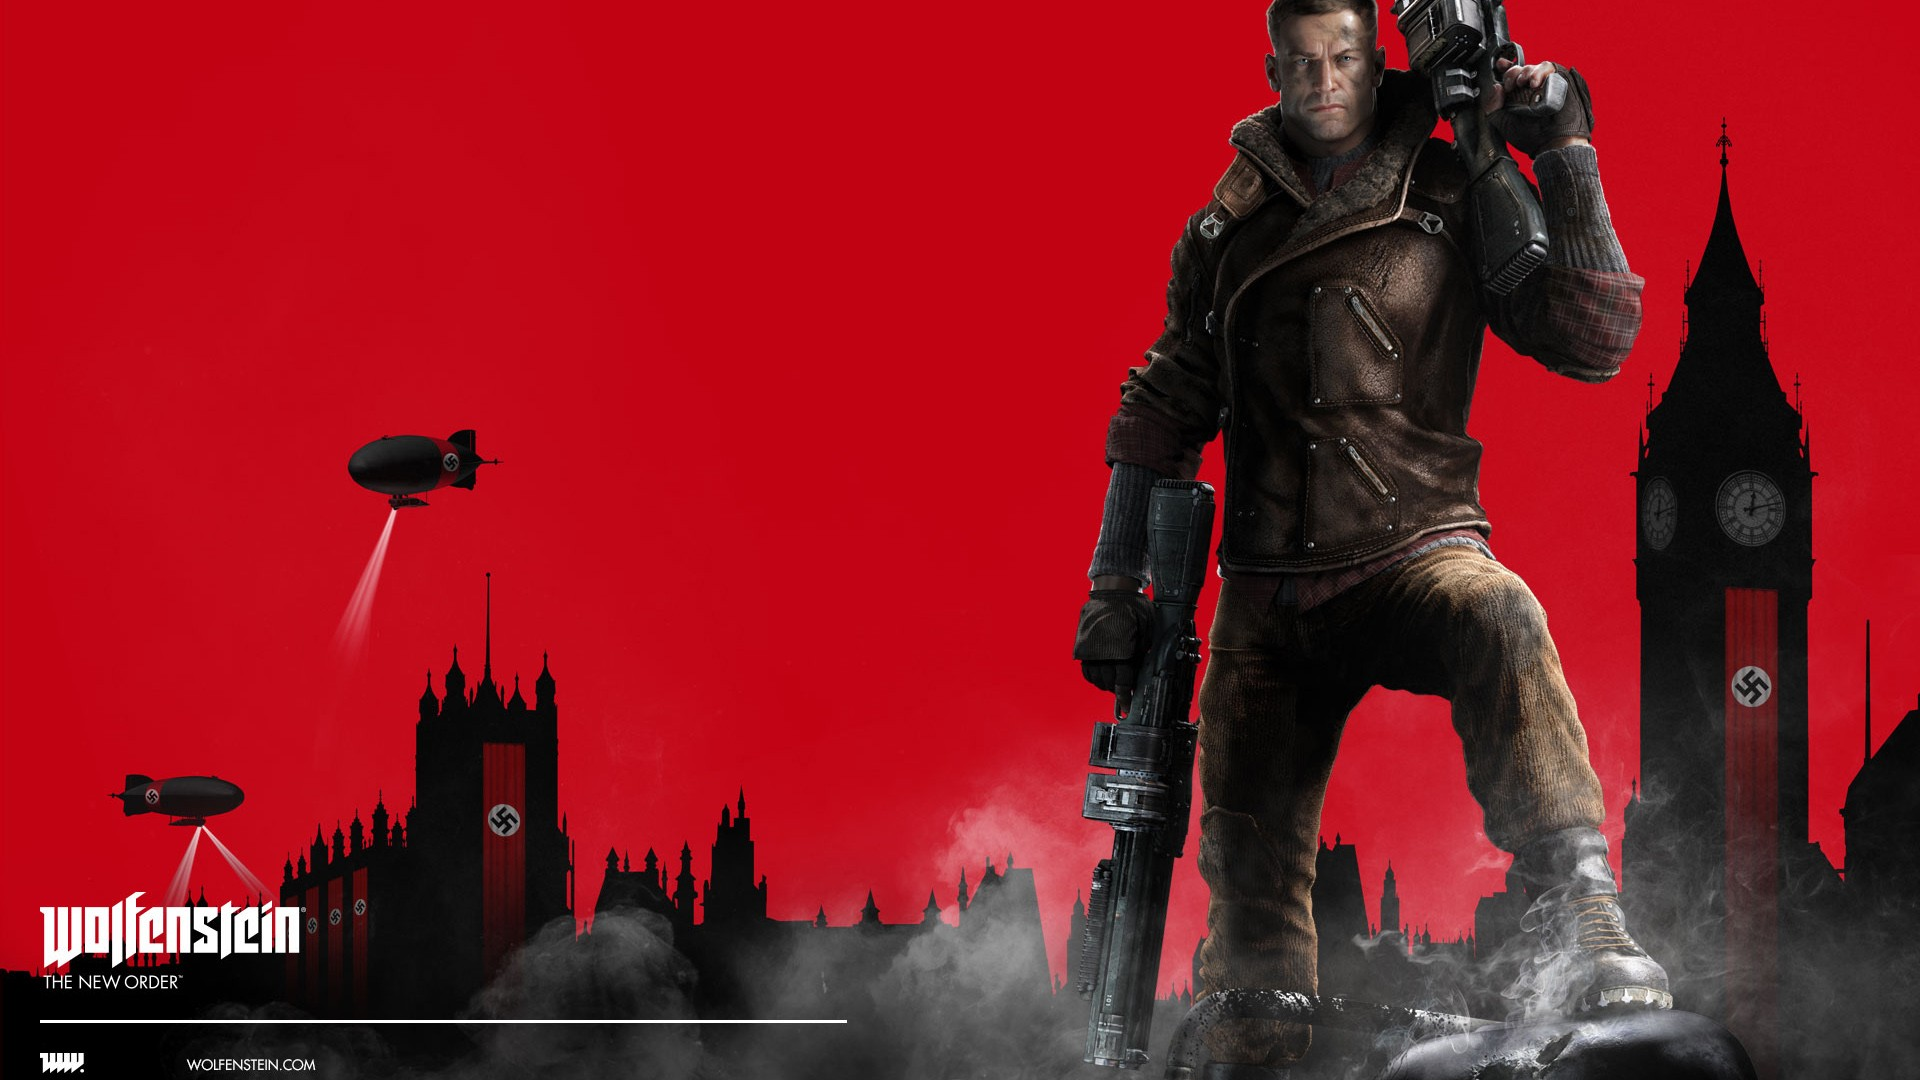 Wolfenstein The New Order Hd Wallpaper Wolfenstein The New Order Video Game Wallpapers Hd